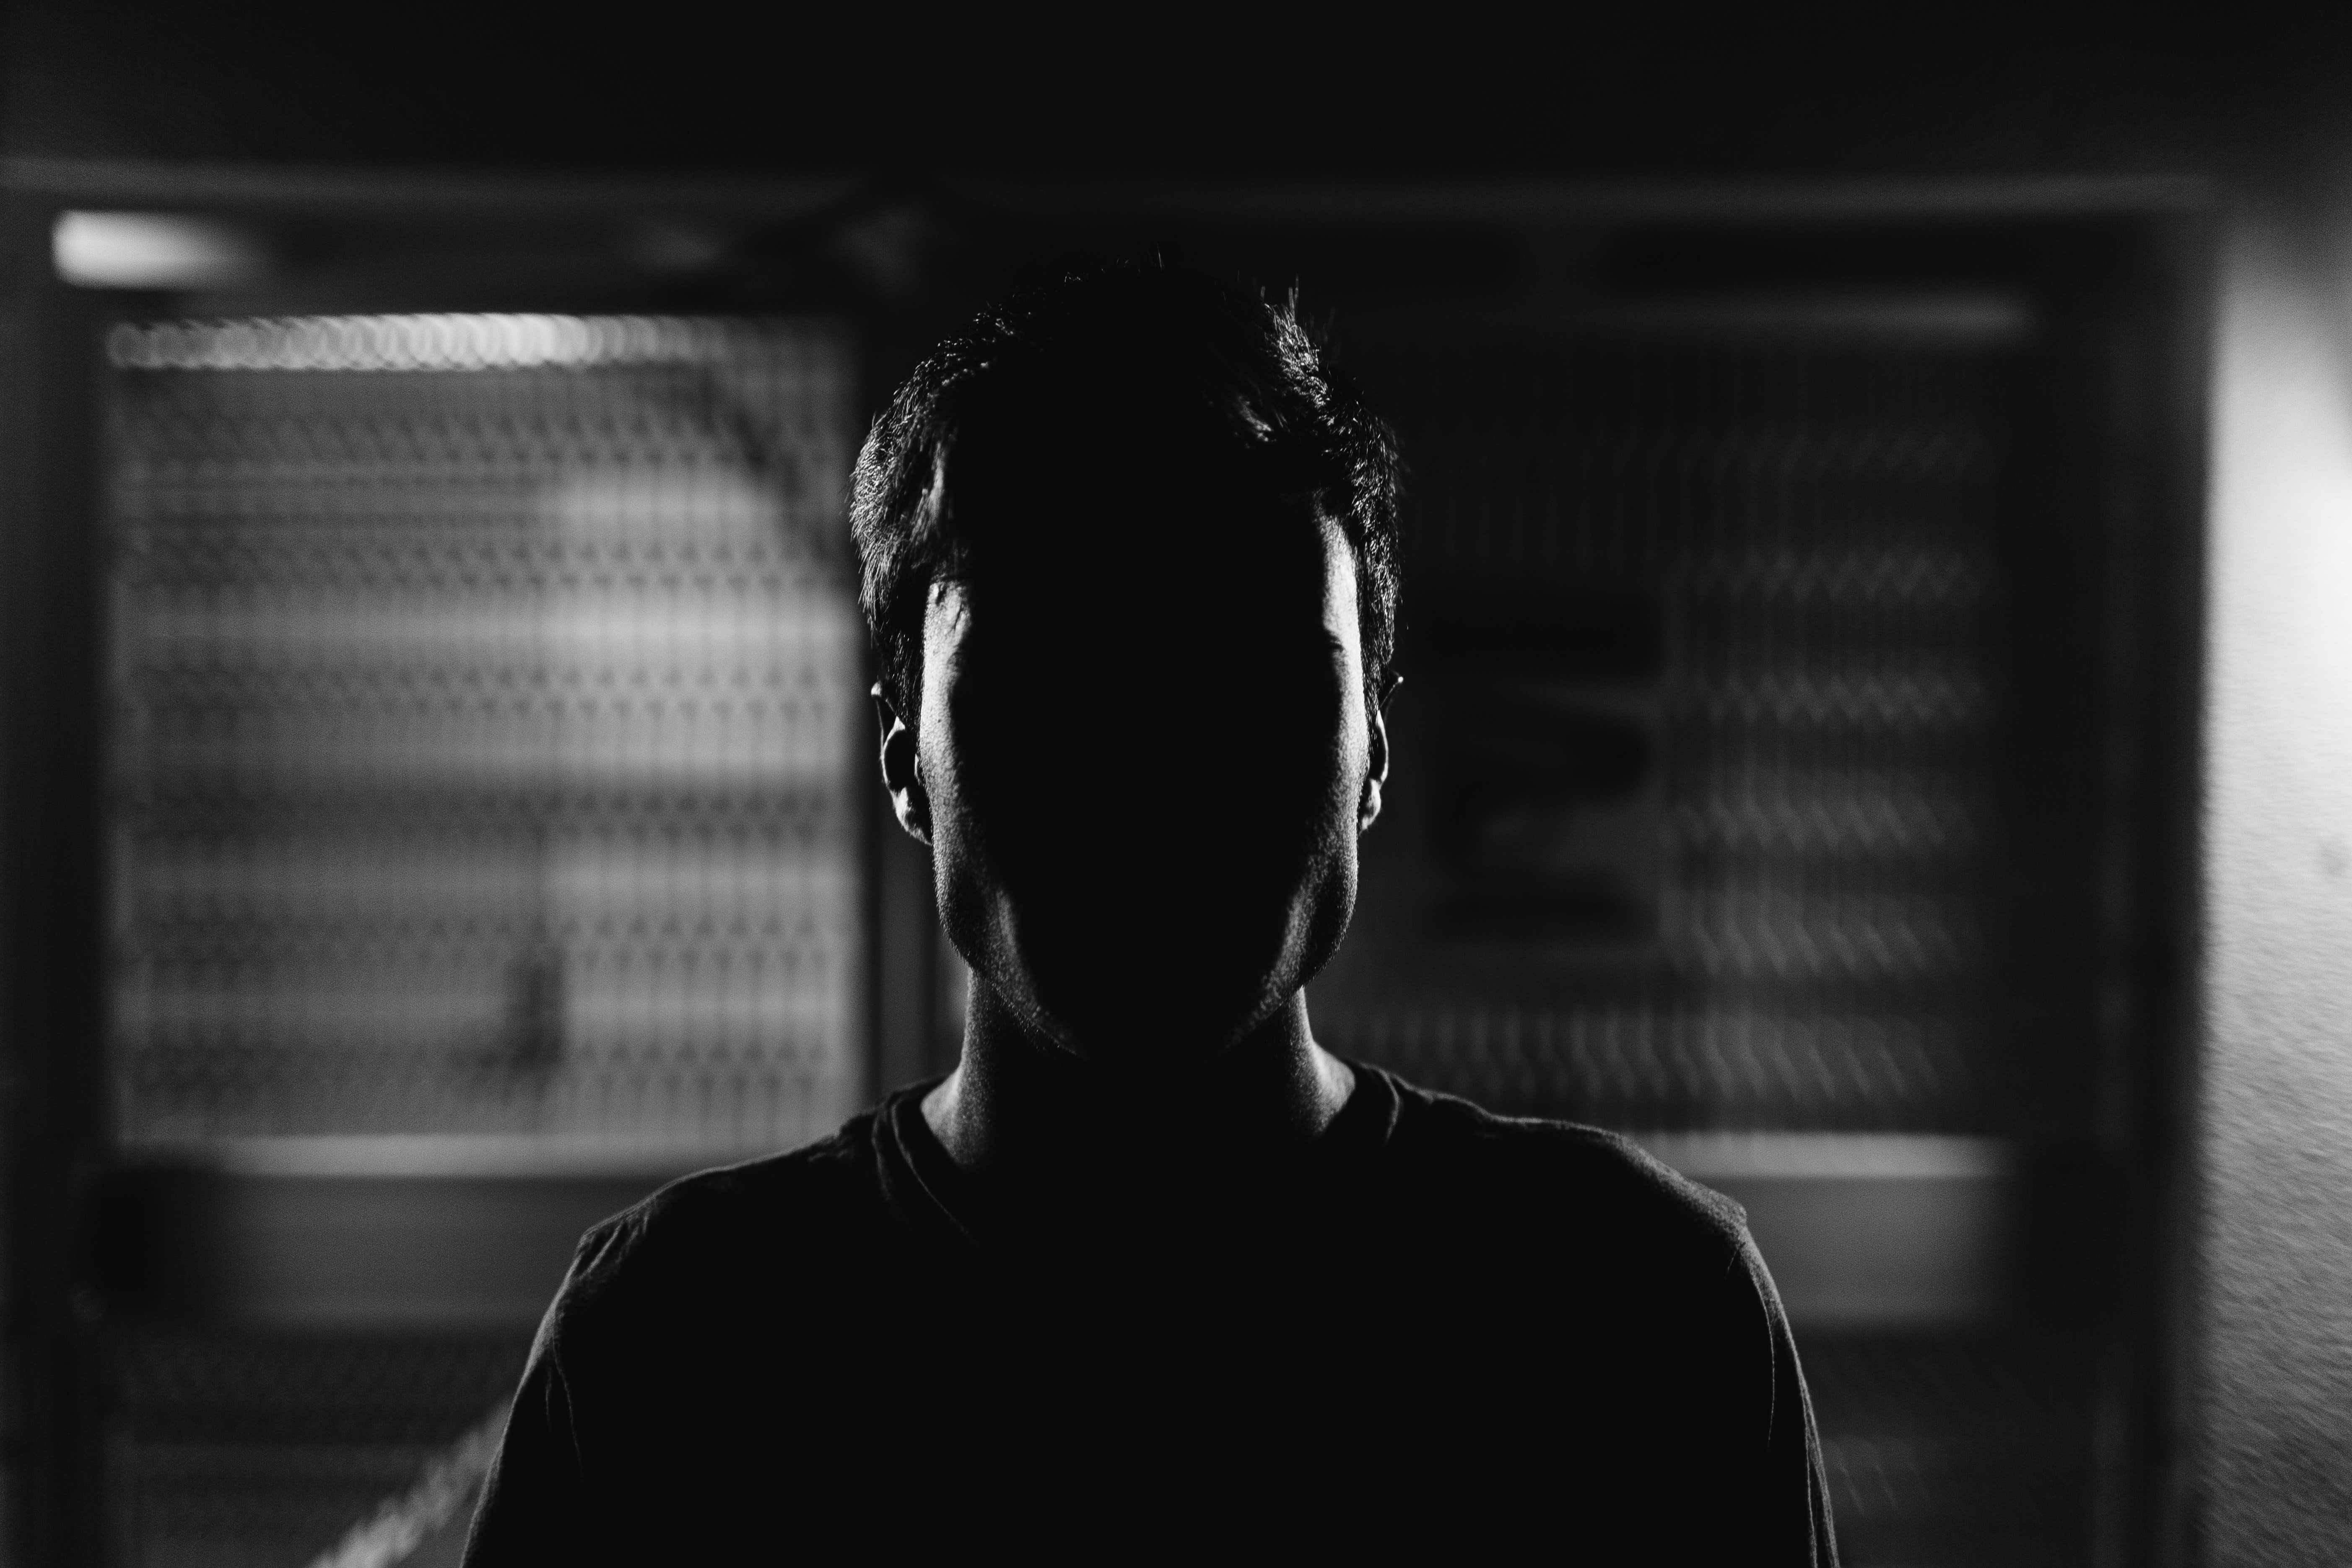 Black and white shot of young man with face obscured by shadow